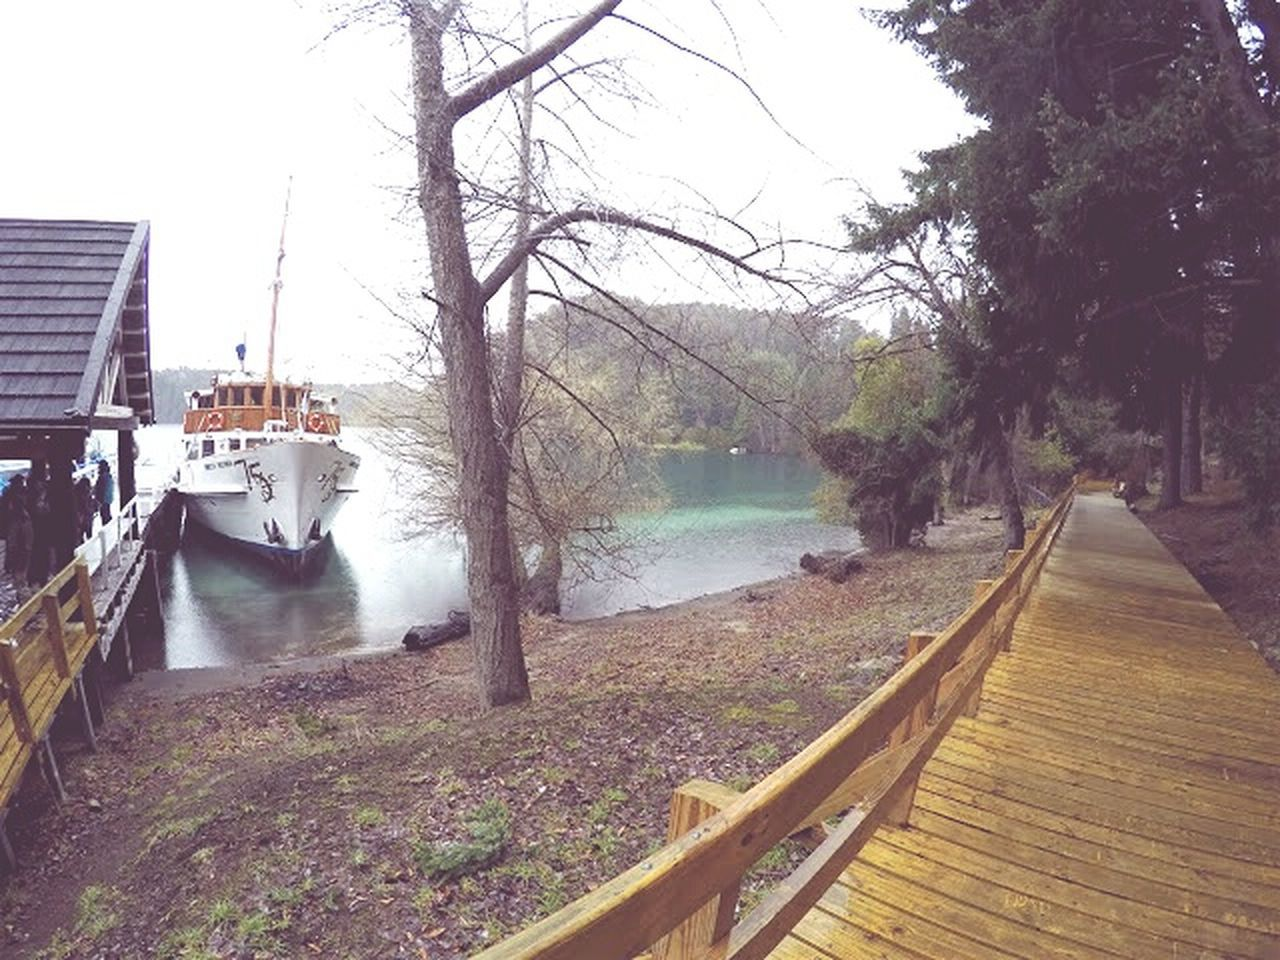 water, tree, river, built structure, nature, day, architecture, outdoors, building exterior, no people, scenics, nautical vessel, beauty in nature, sky